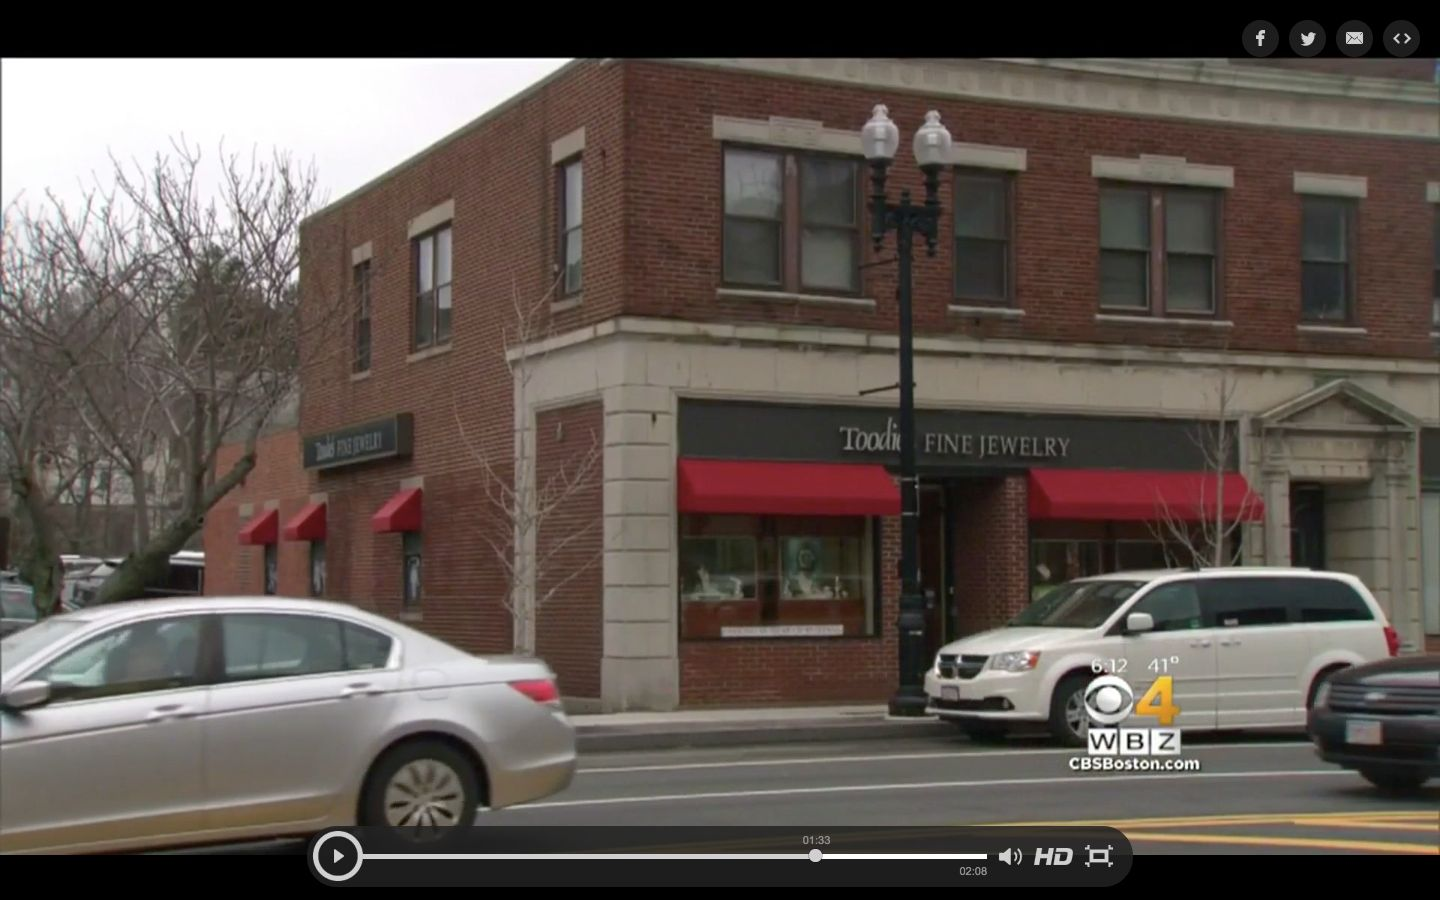 An employee at Toodies Fine Jewelry in Quincy, Massachusetts, has been ordered to pay more than $34,500 after writing a fake